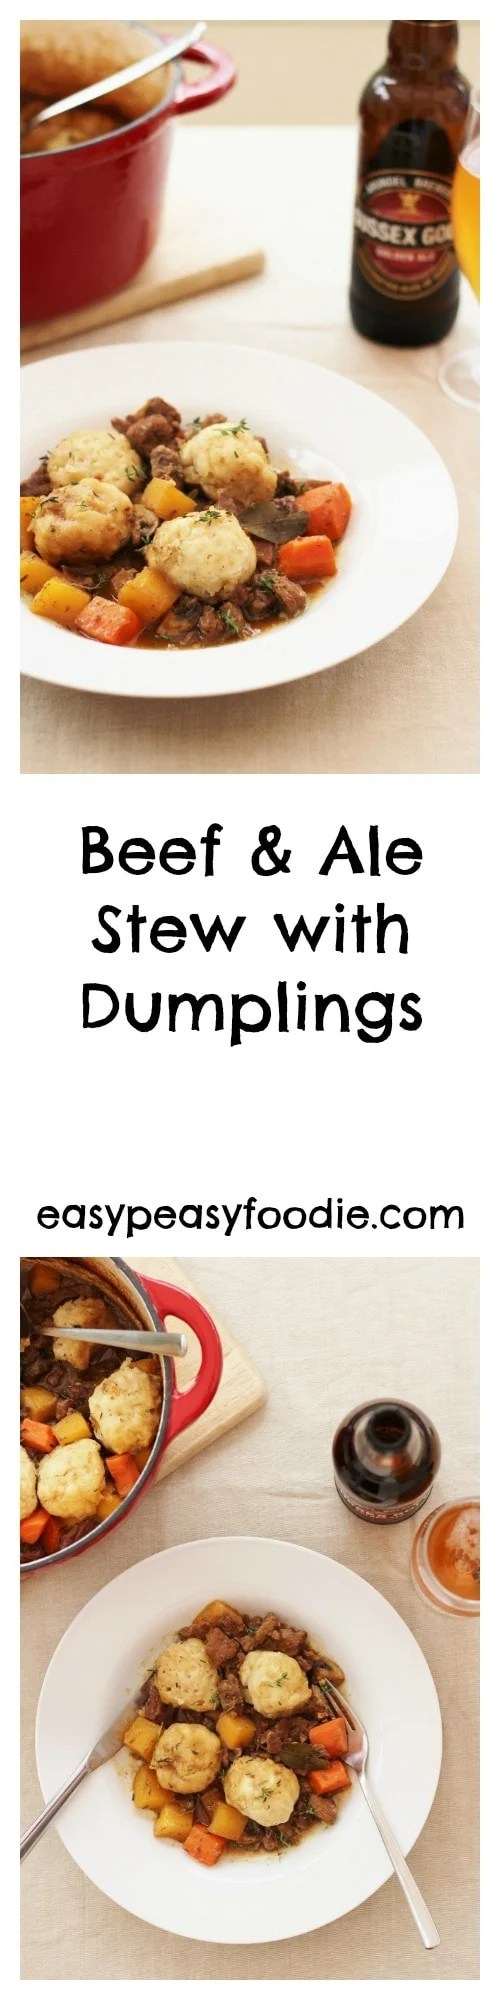 Perfect for chilly winter nights, this easy peasy Beef and Ale stew with Dumplings is a total comfort food classic – the edible equivalent of a great big hug! #stew #beefstew #stewanddumplings #dumplings #britishfoodclassics #beefandalestew #britishale #comfortfood #winterfood #easypeasyfoodie #cookblogshare #freefromgang